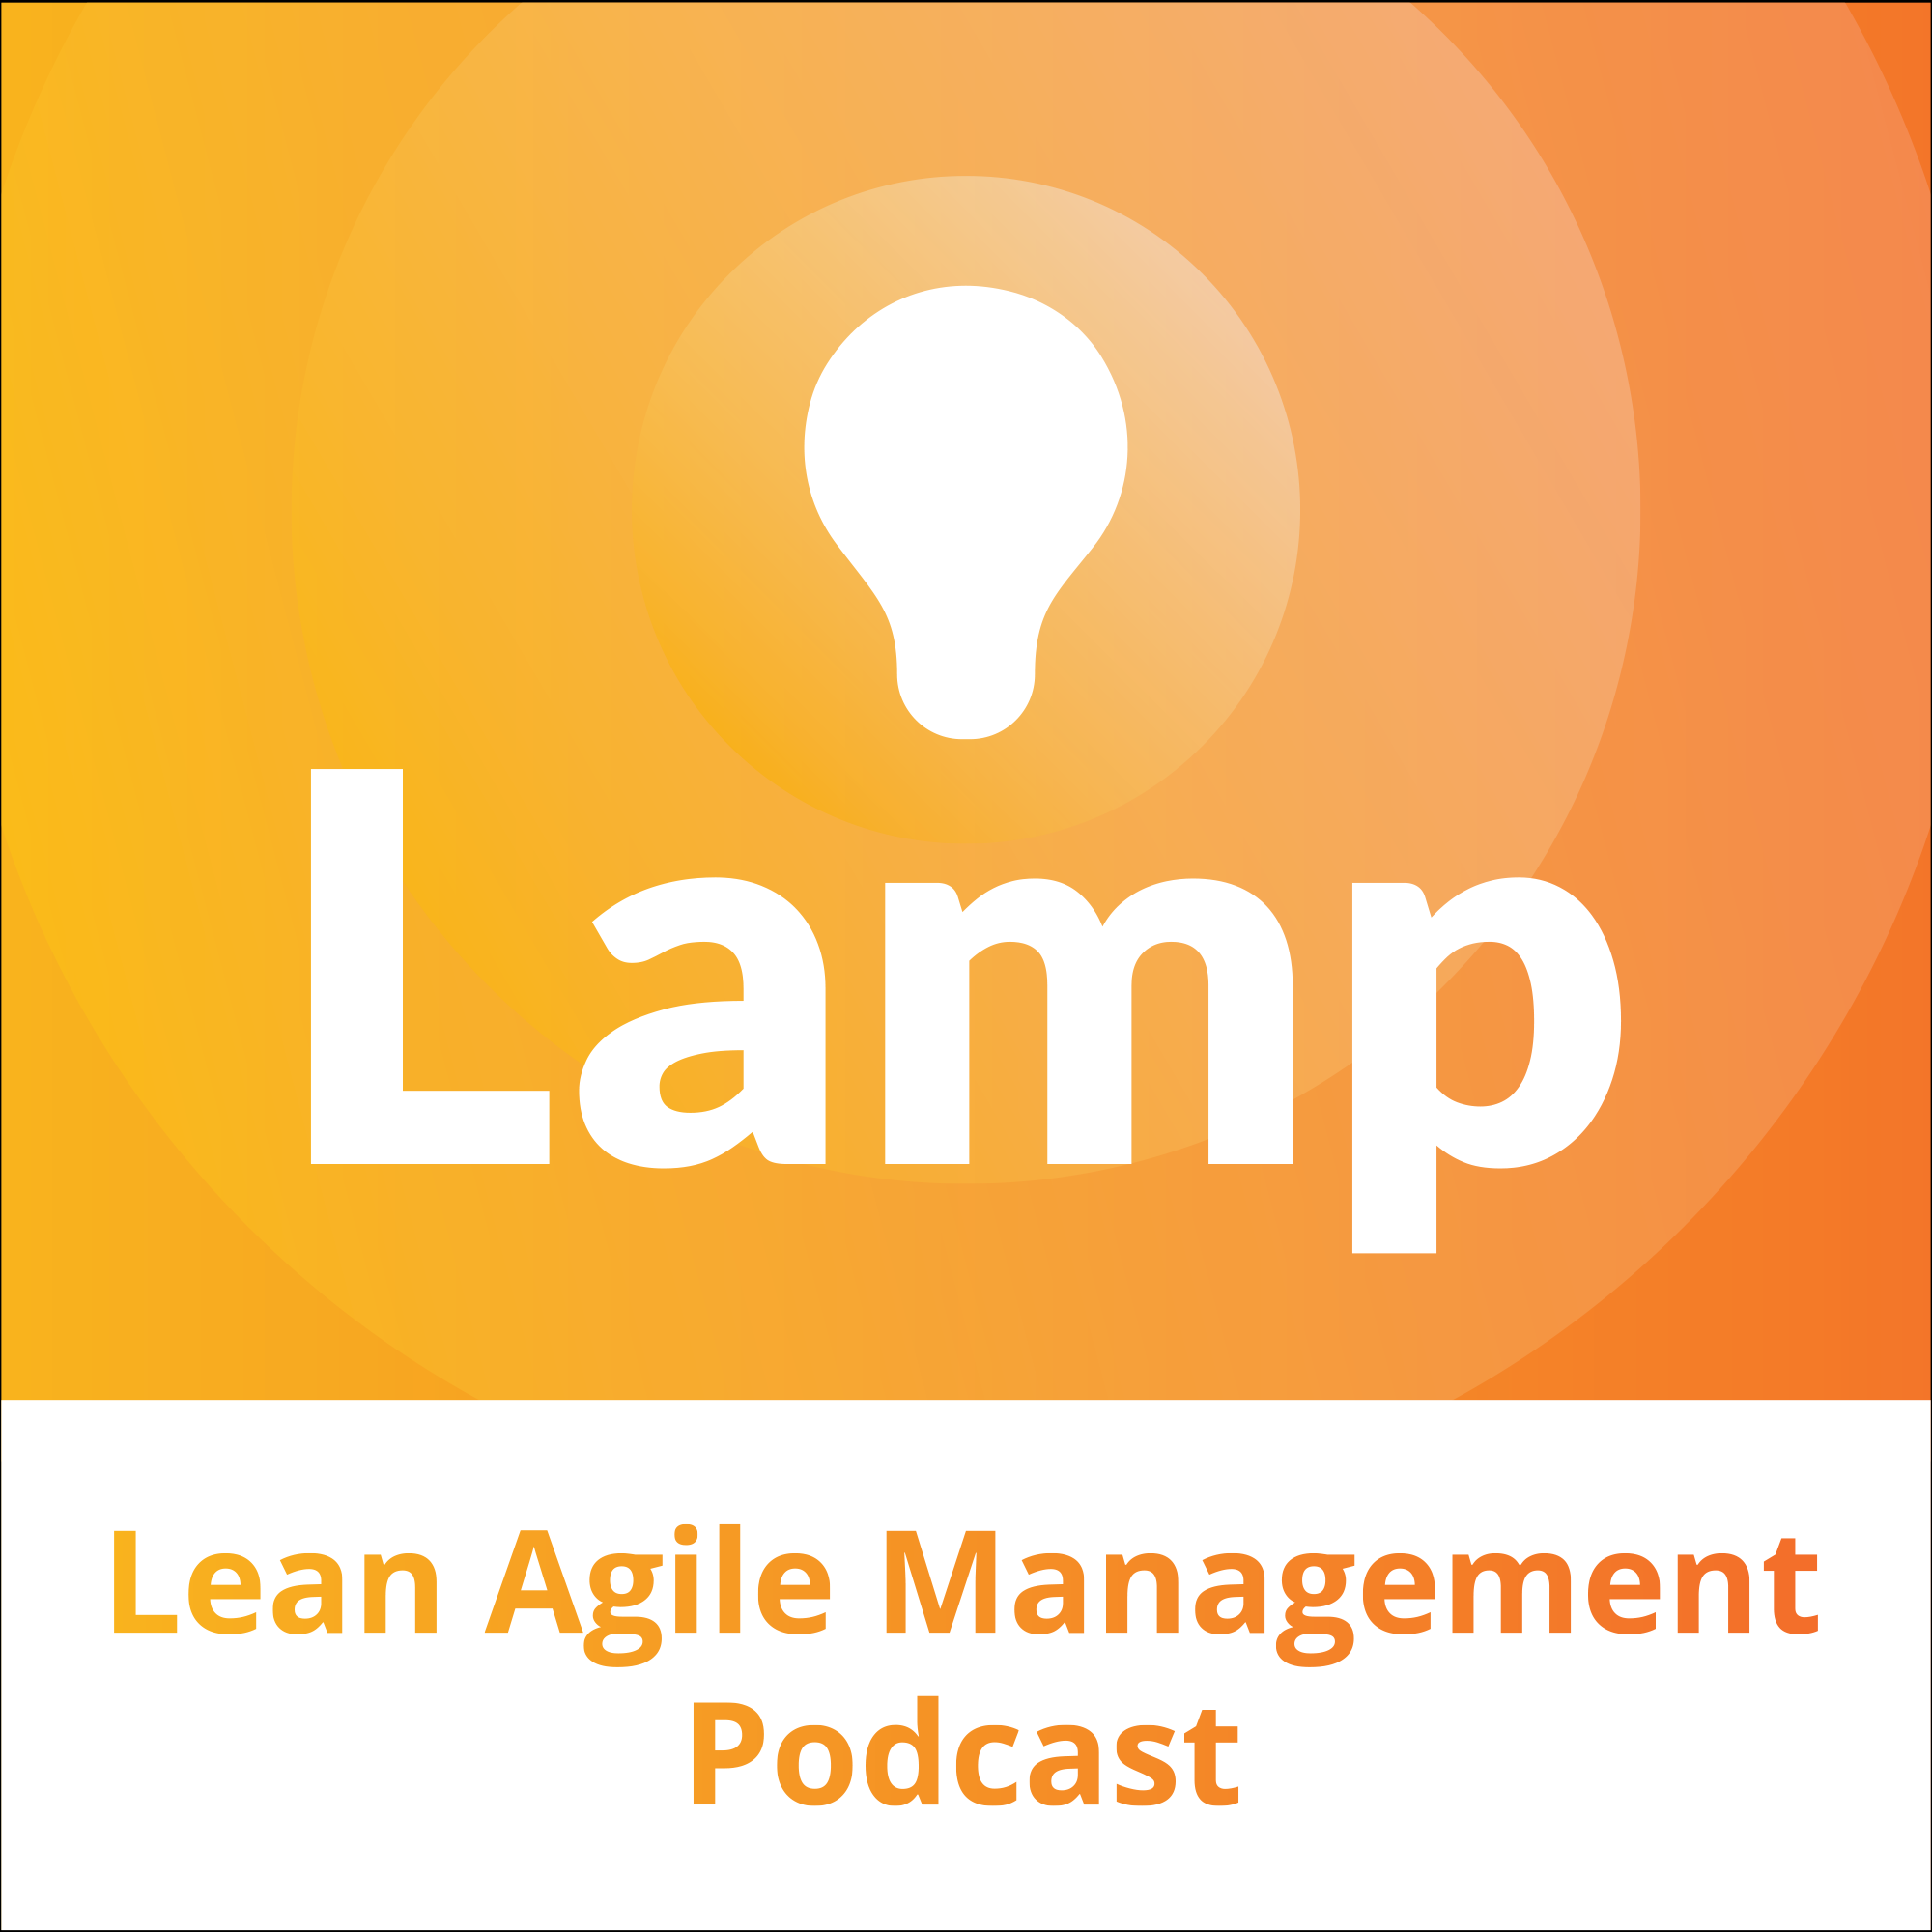 Lean Agile Management Podcast